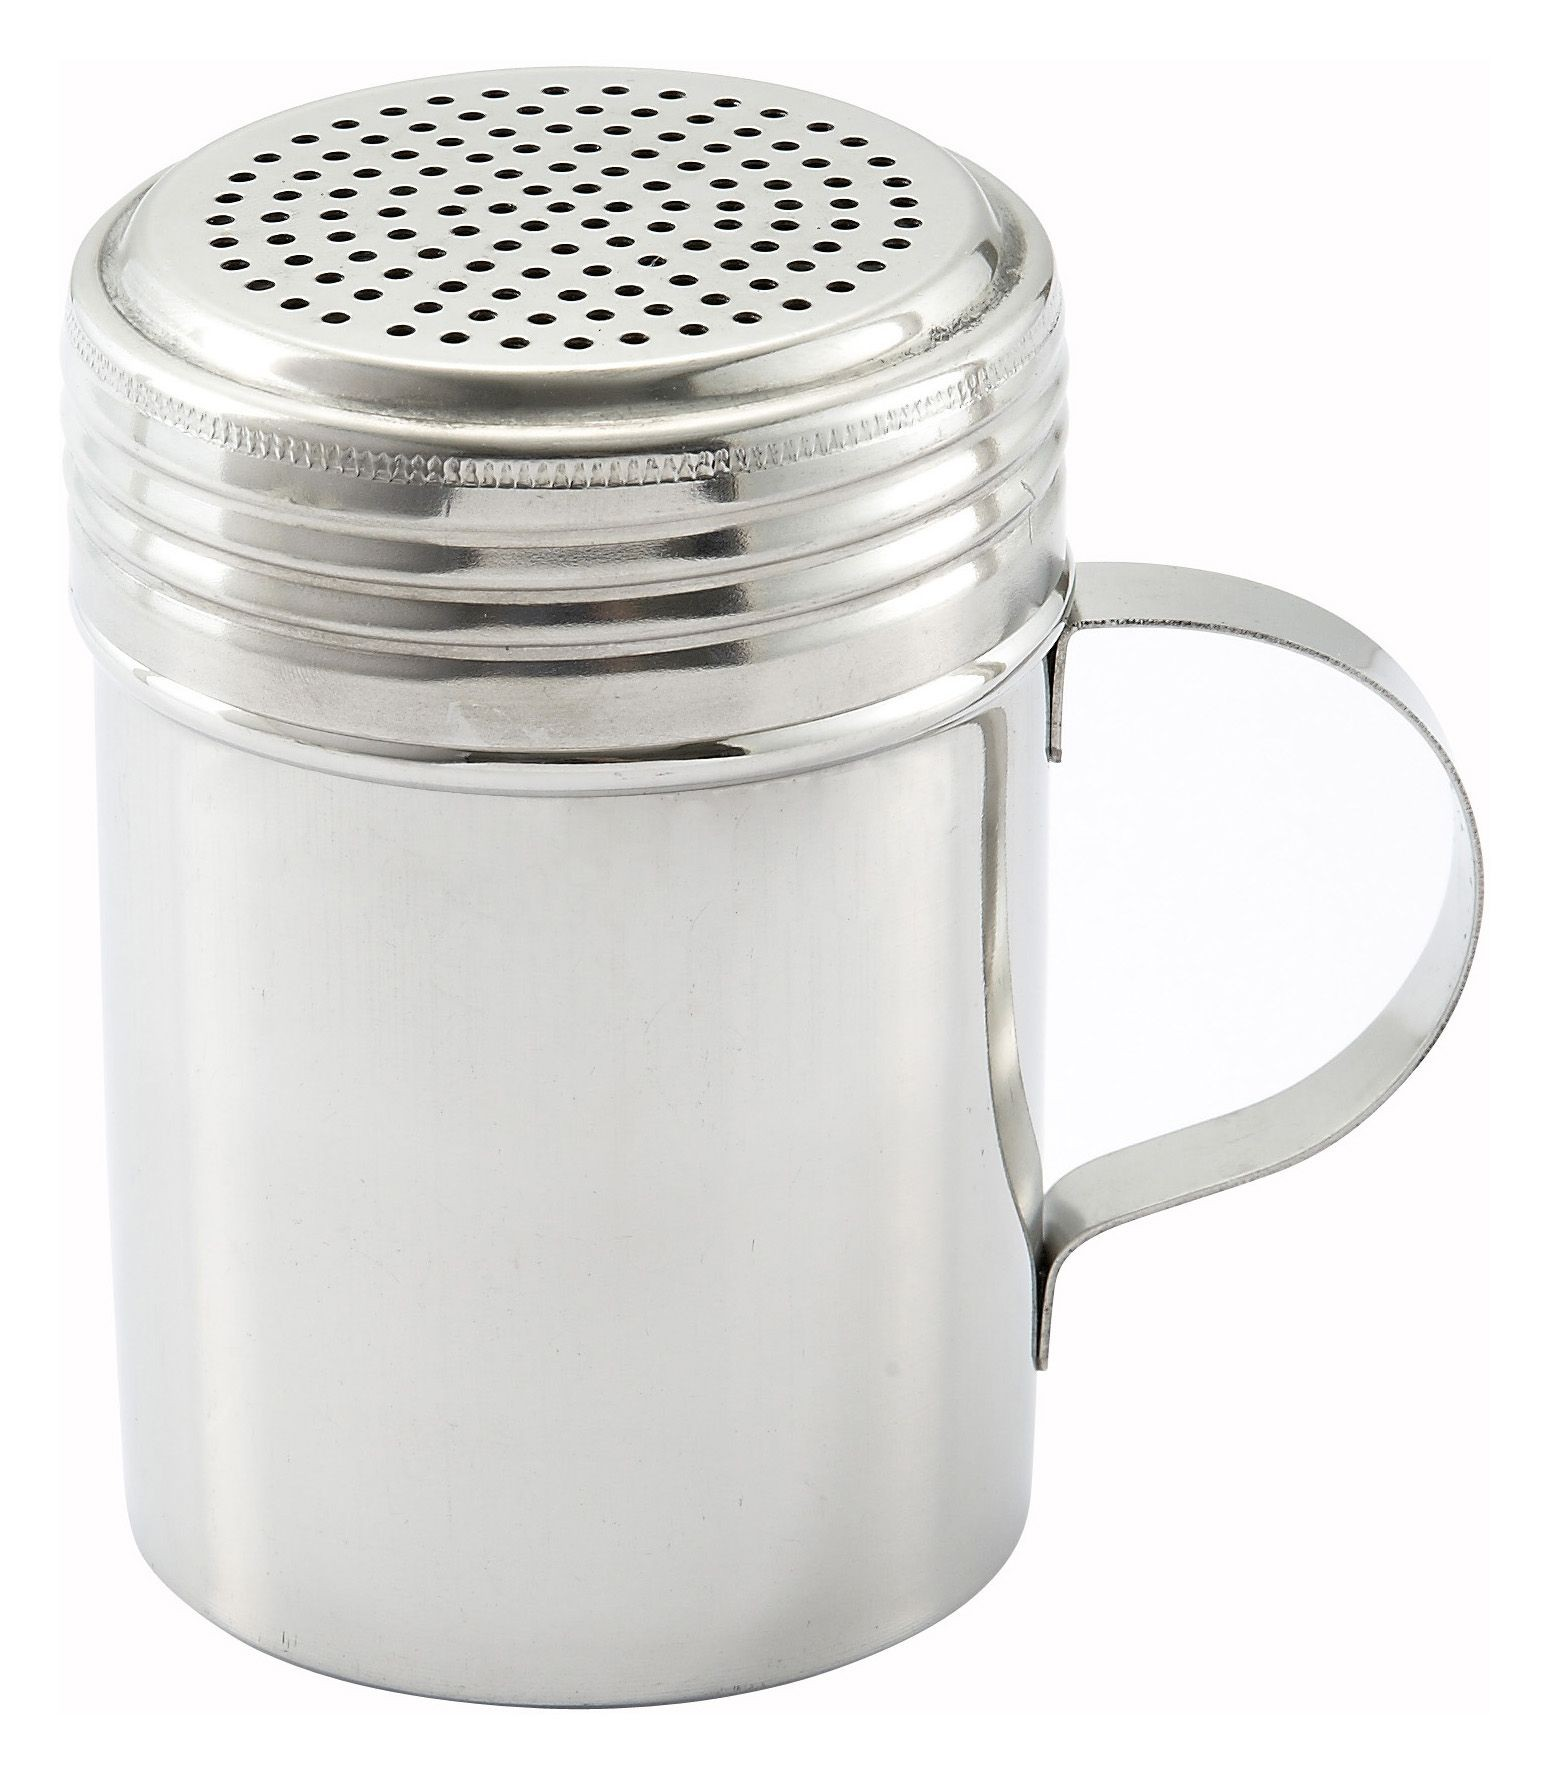 Winco DRG-10 Stainless Steel 10 oz. Dredge with Handle